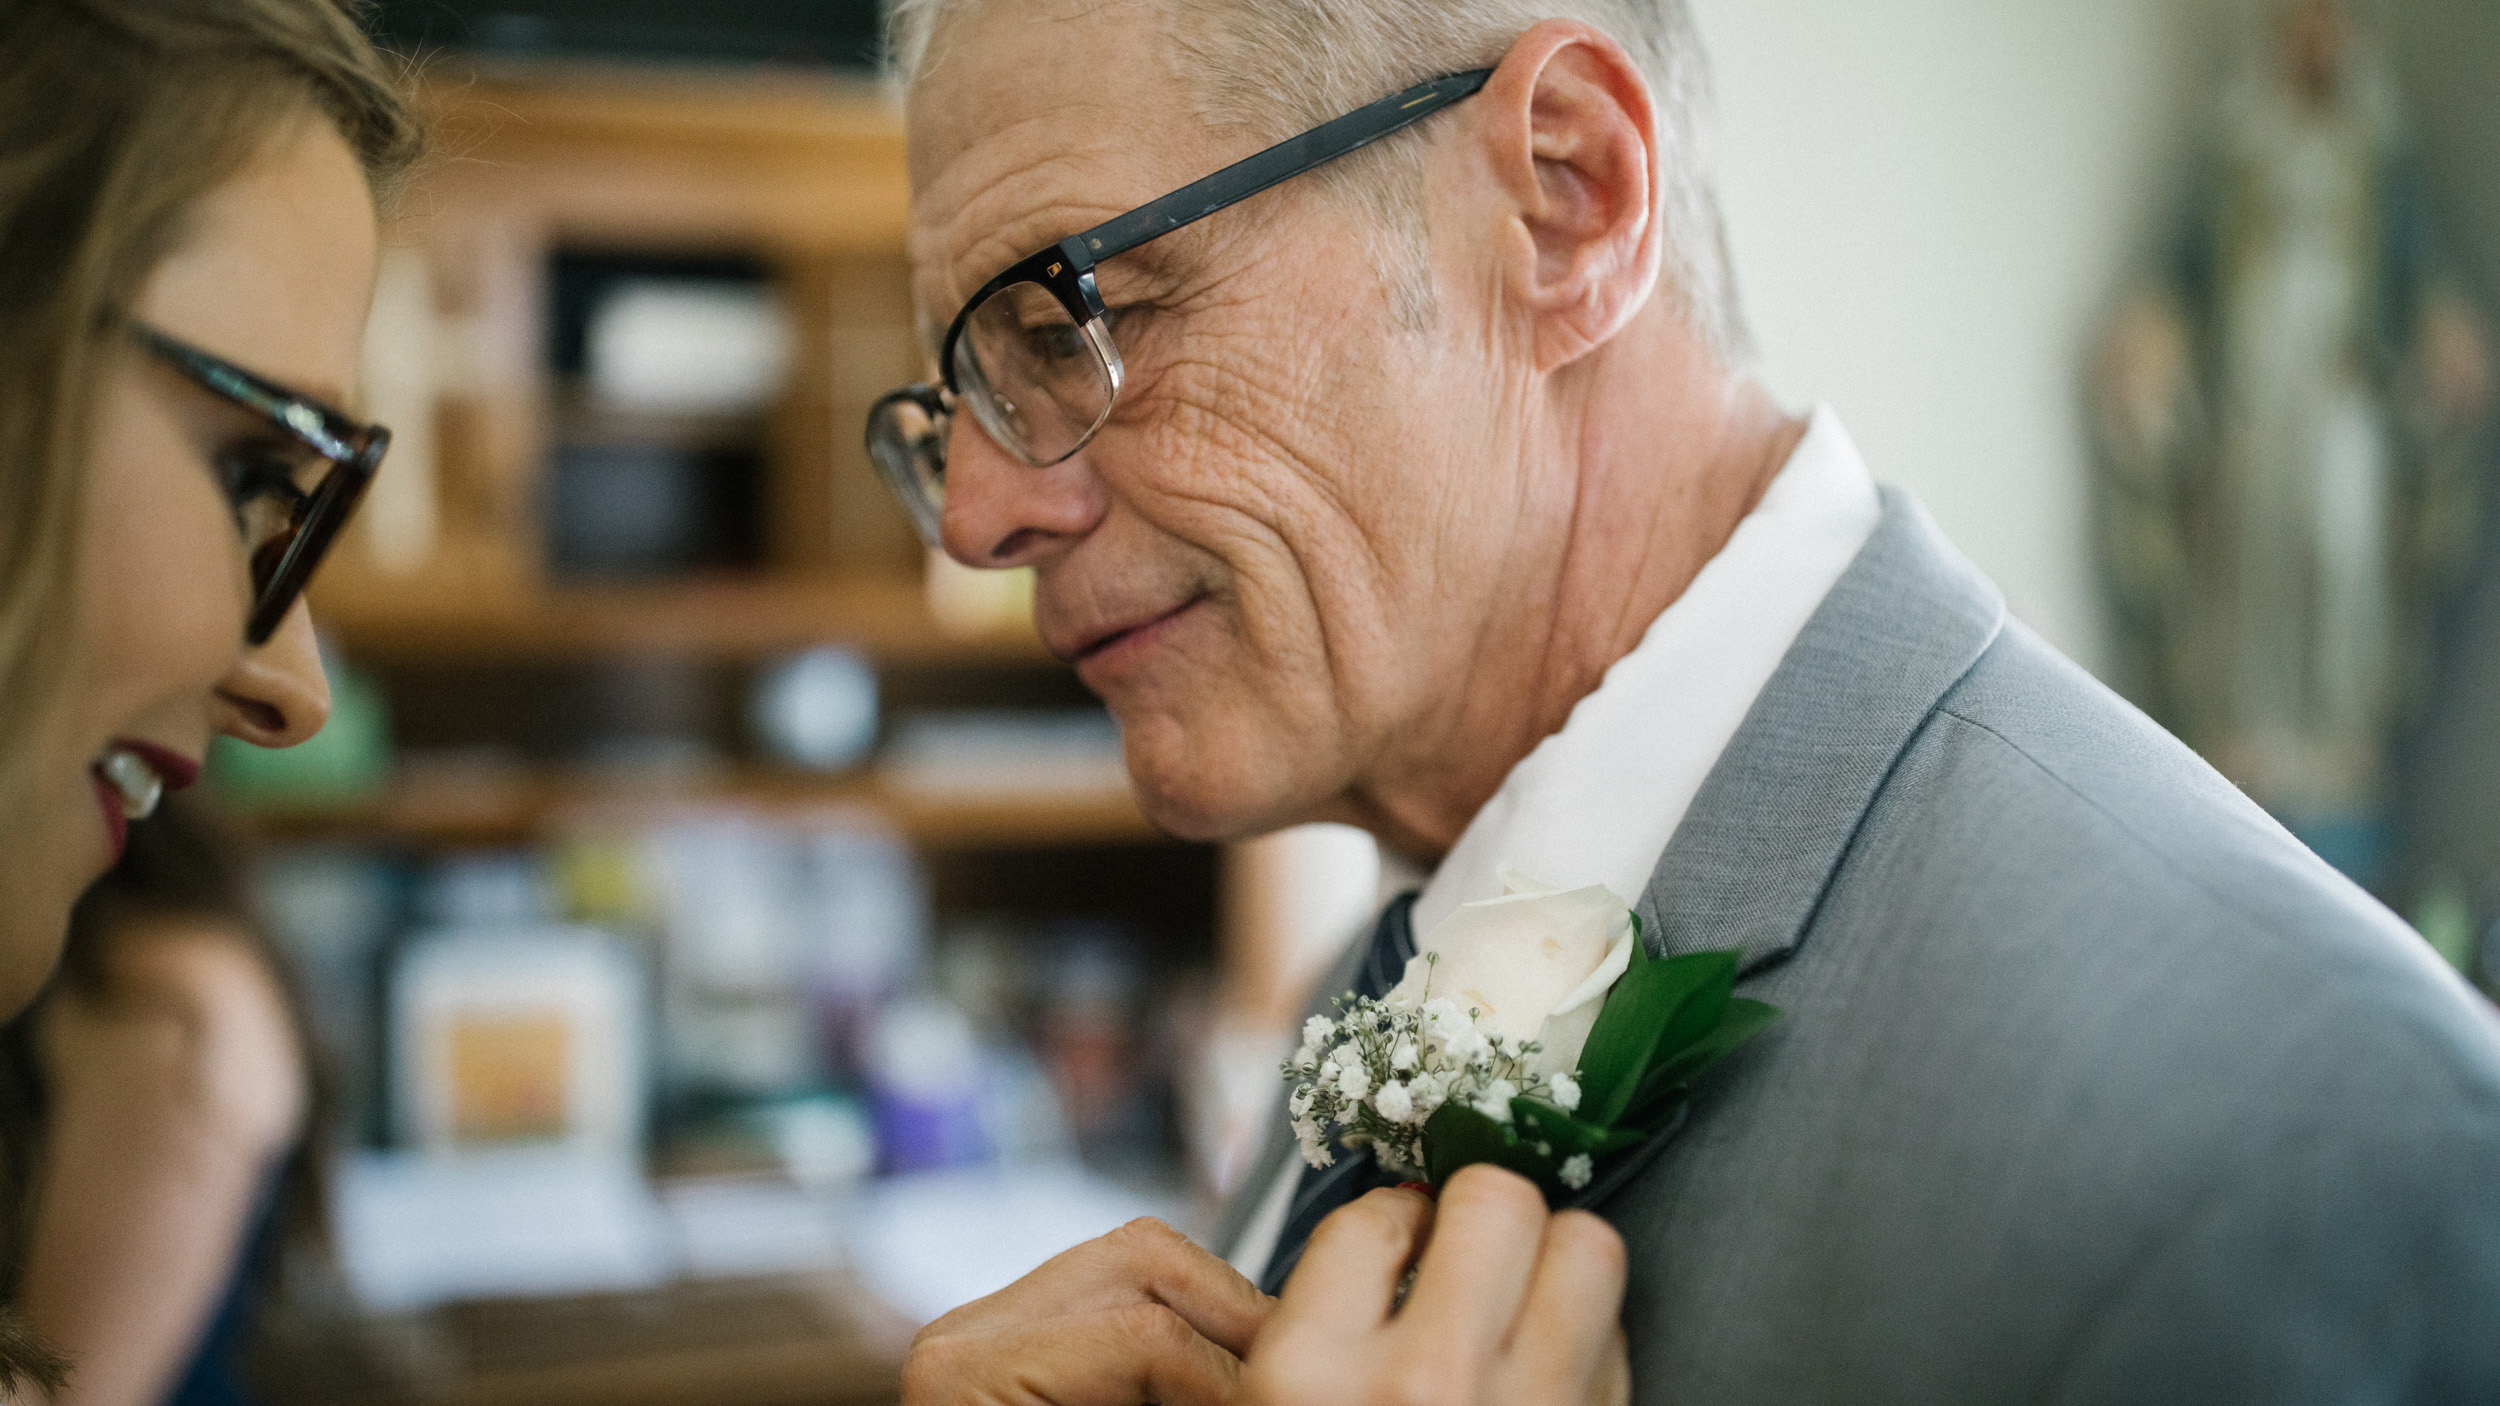 alec_vanderboom_john_micahel_lucy_kansas_city_wedding_photographer-0019.jpg